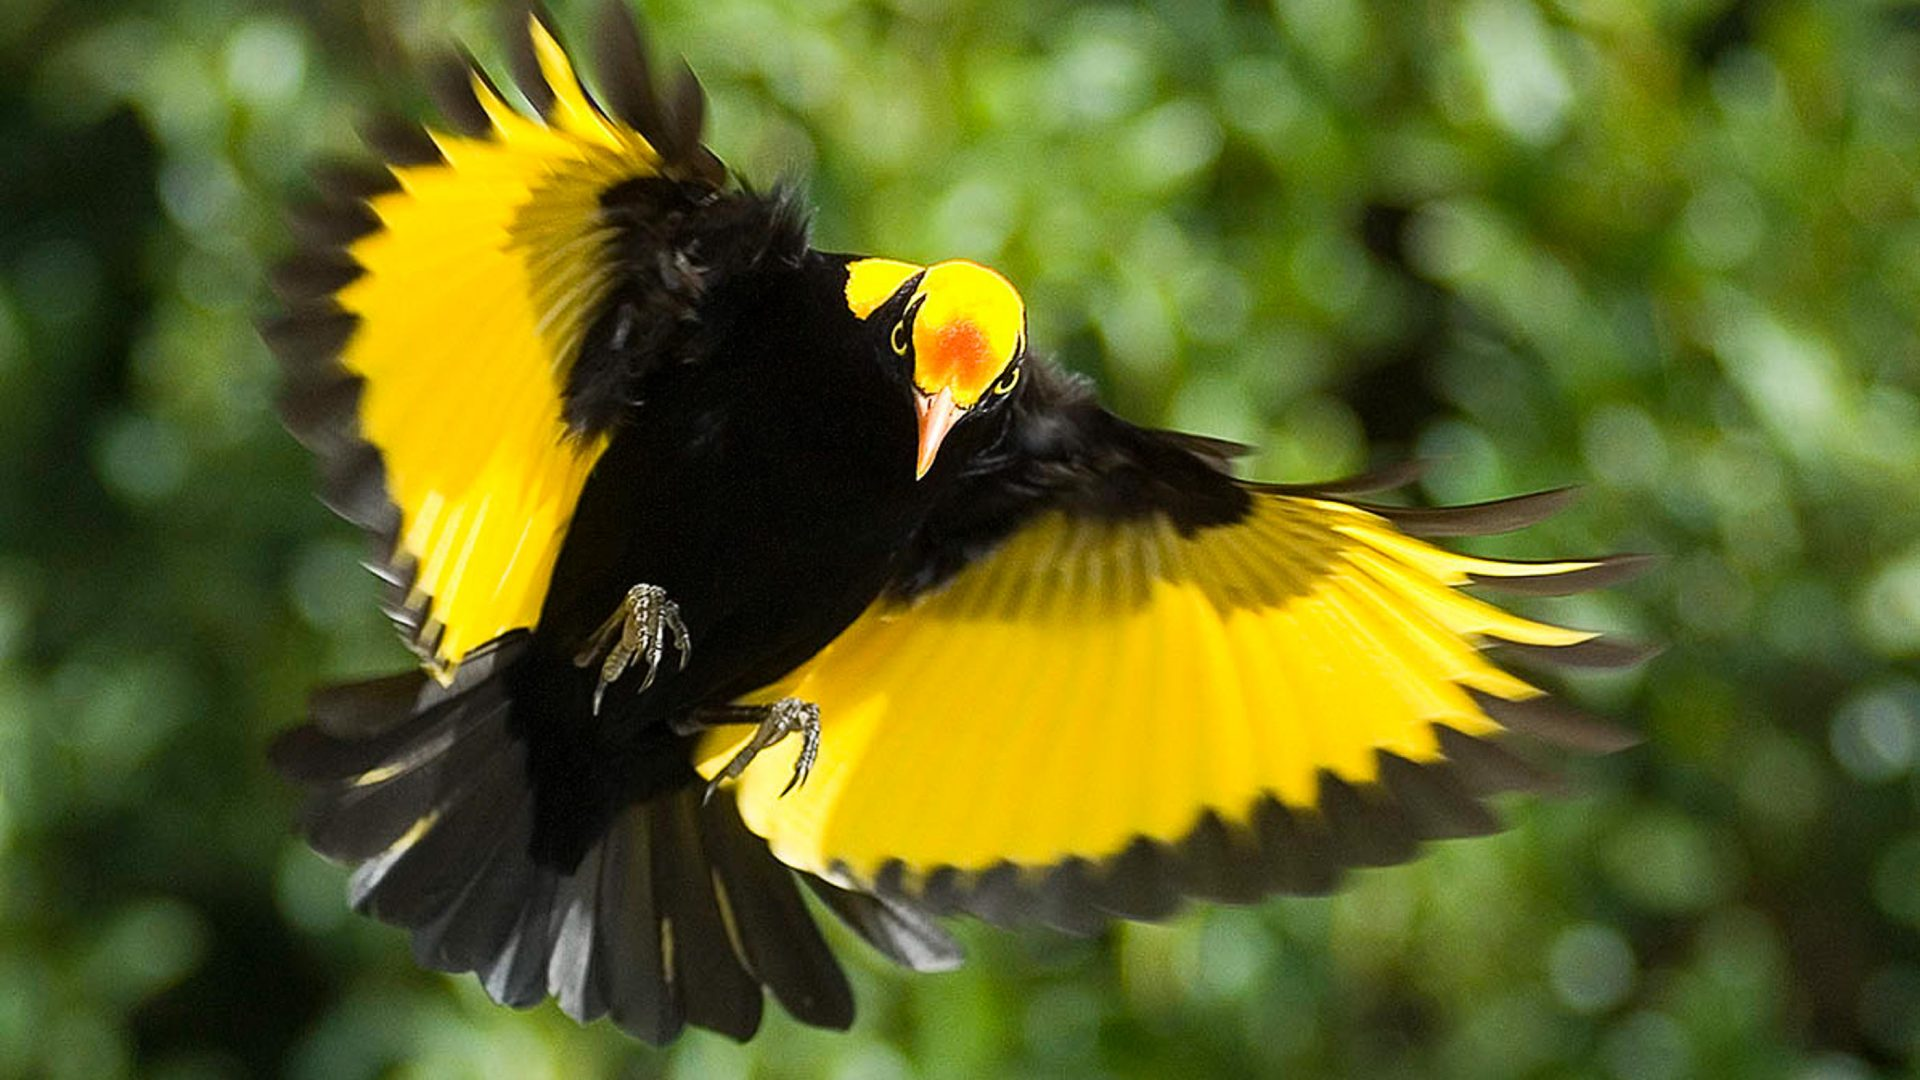 Yellow and black bird with wings outstretched.